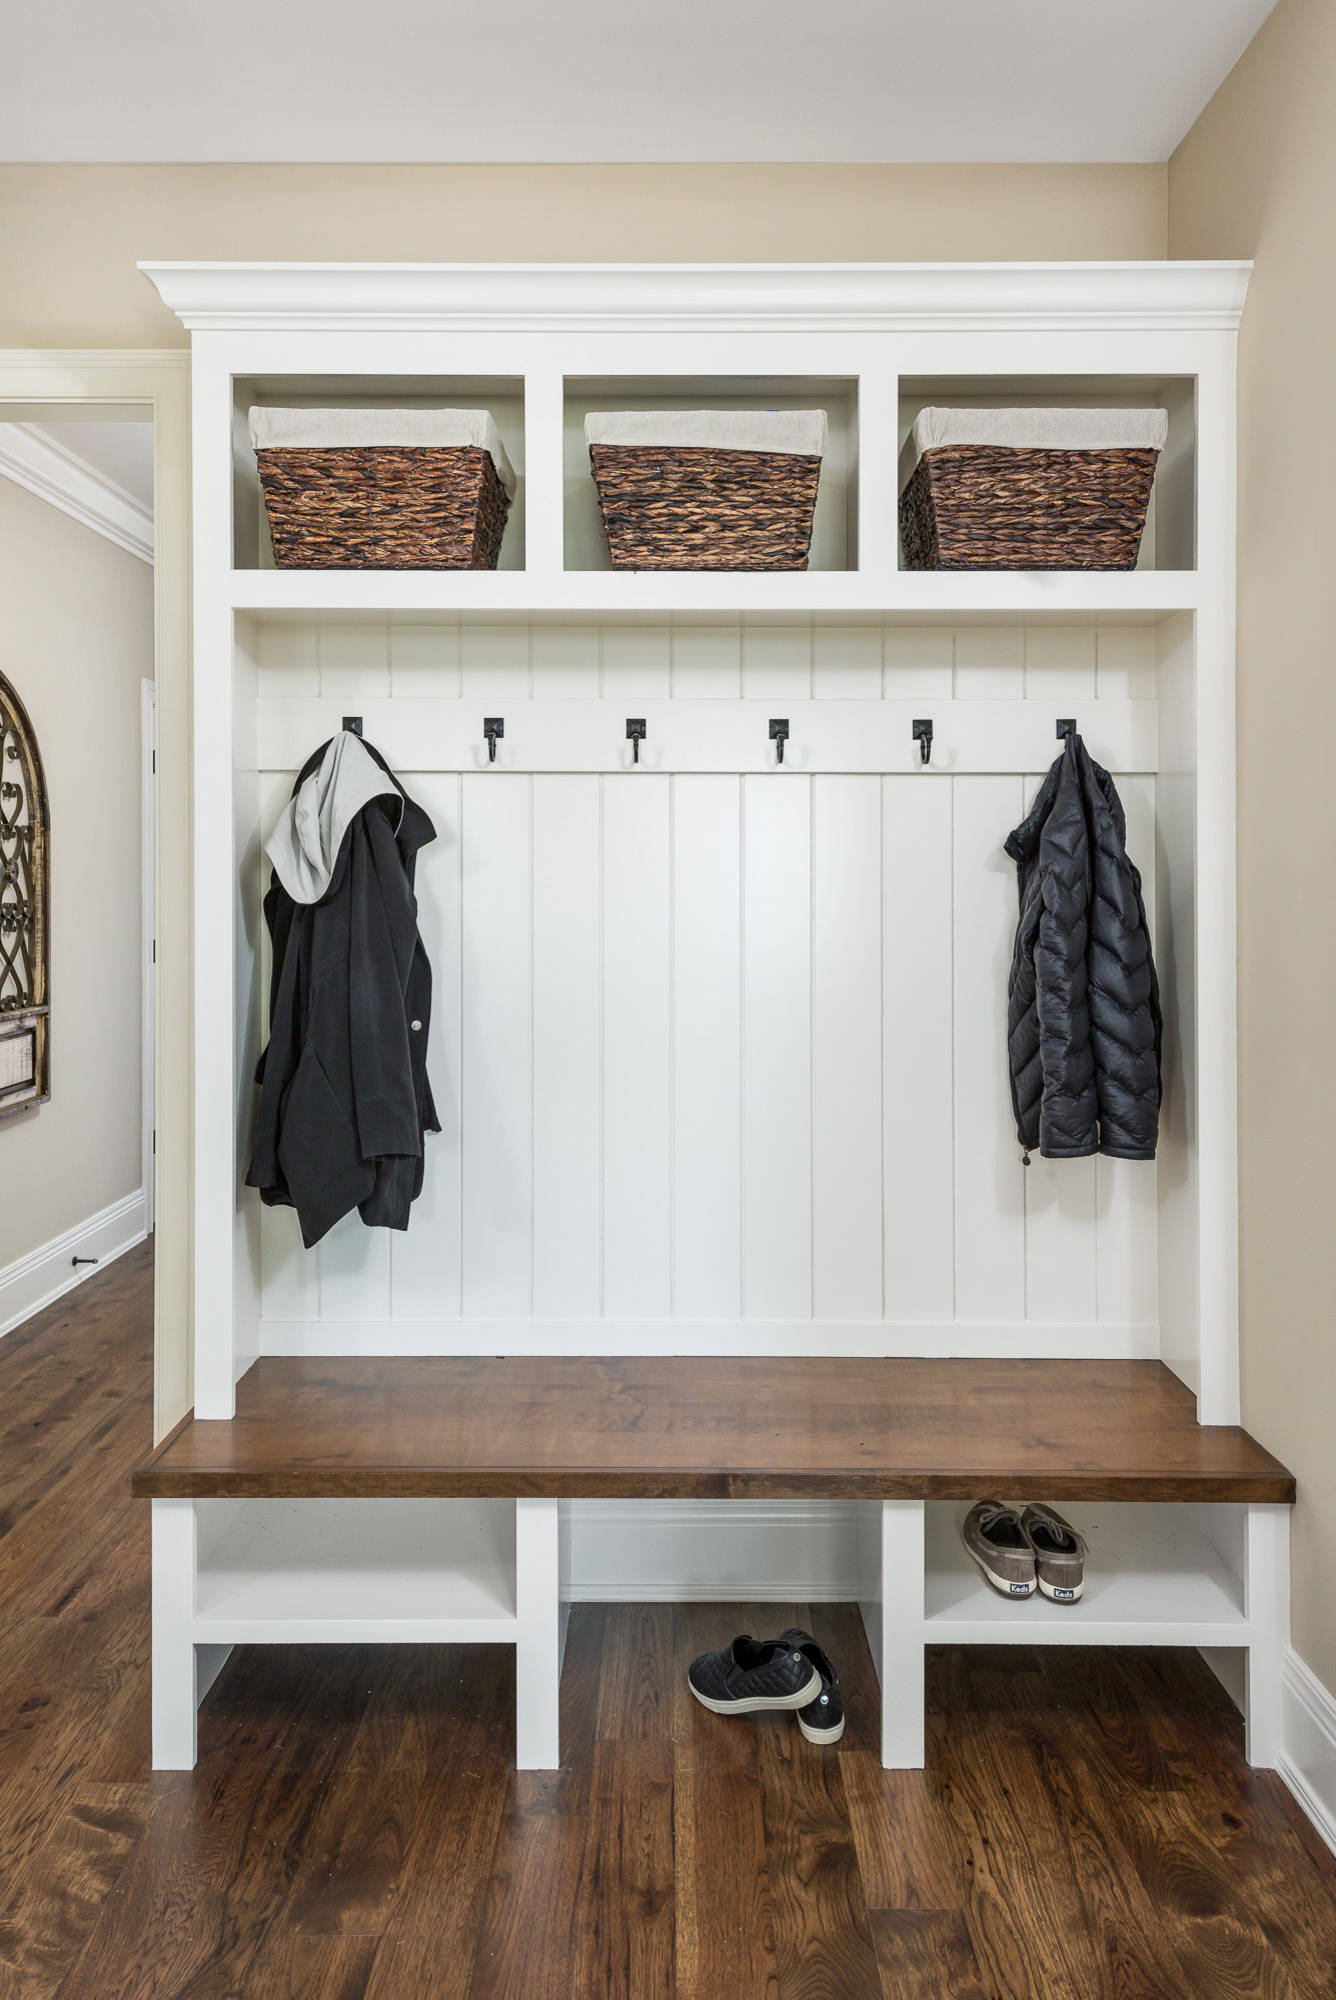 75 Beautiful Mudroom Pictures Ideas February 2021 Houzz